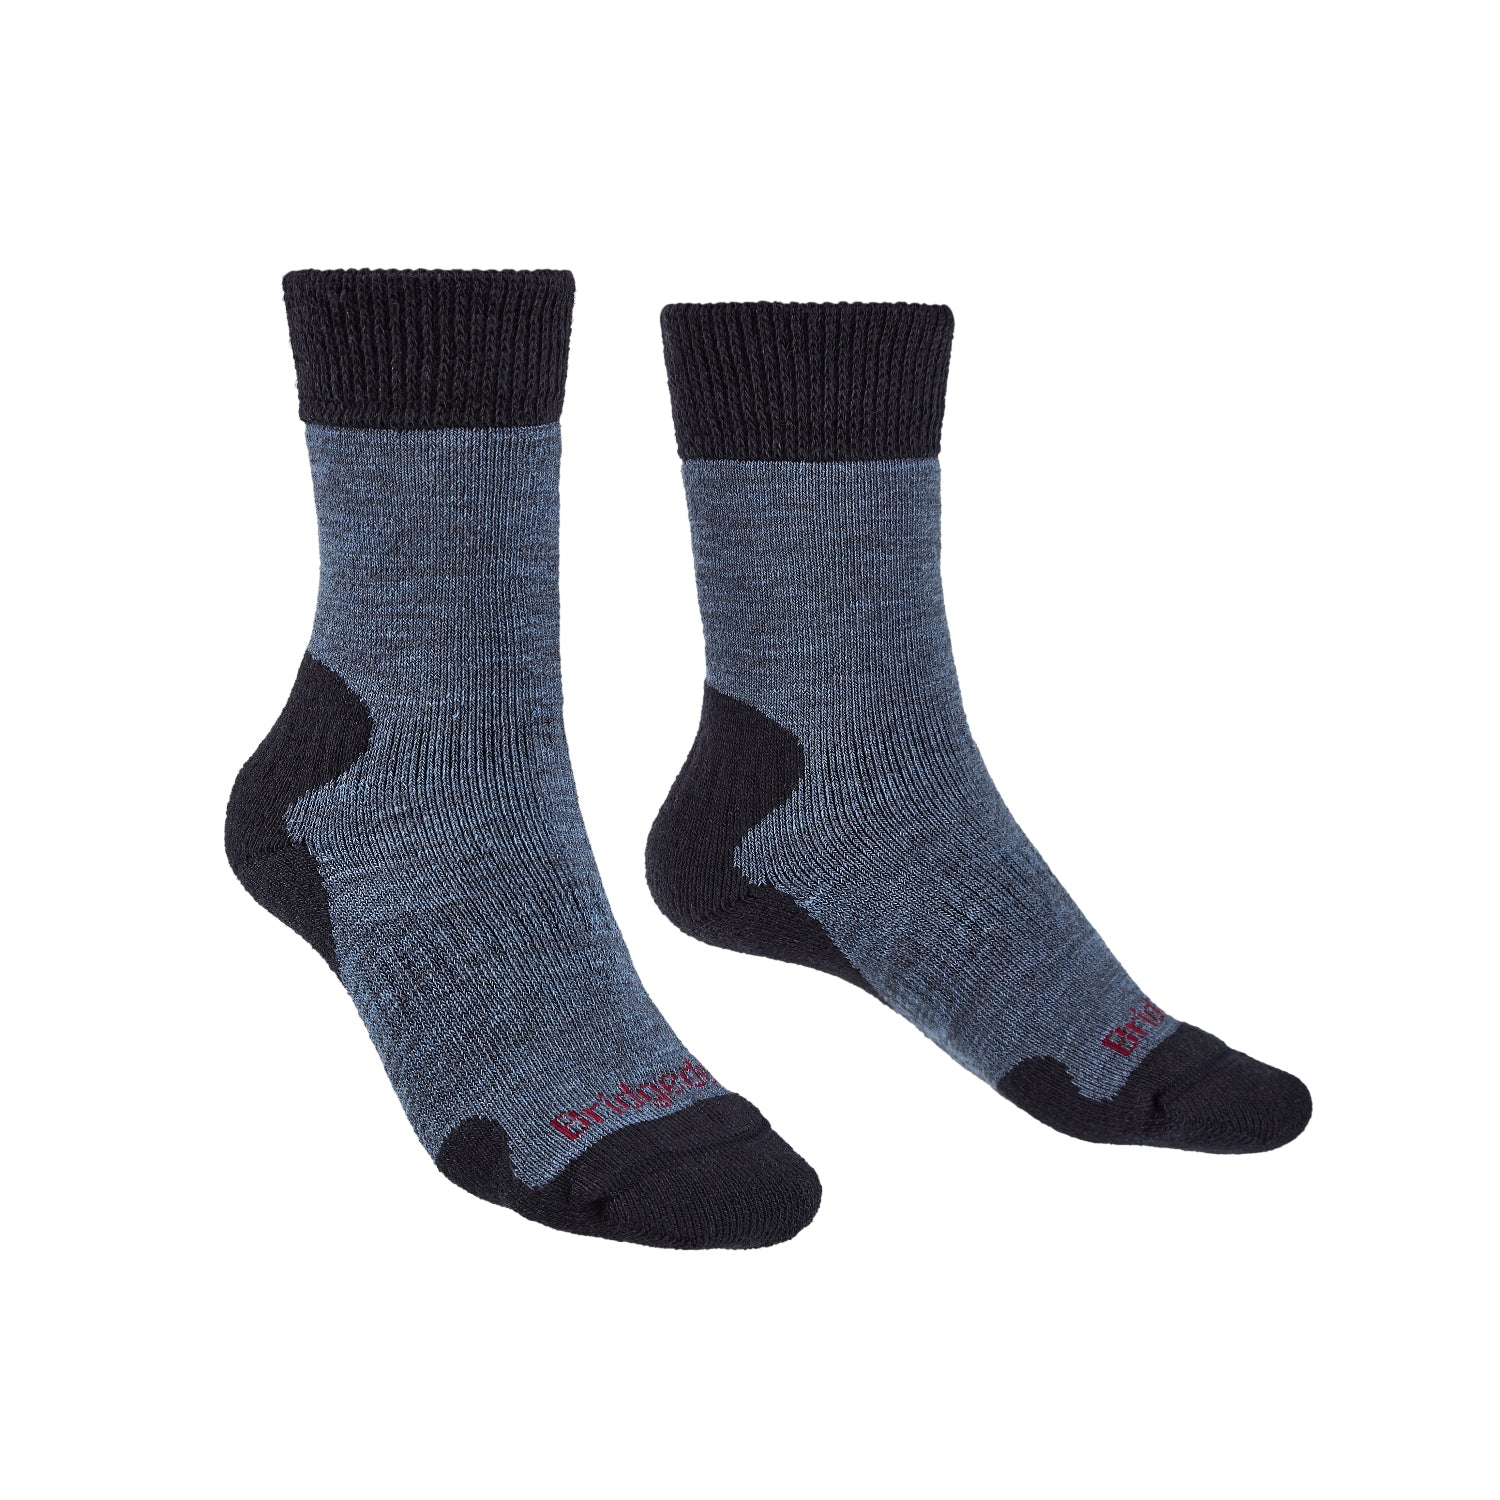 Bridgedale Women's MERINO EXPEDITION Comfort Socks